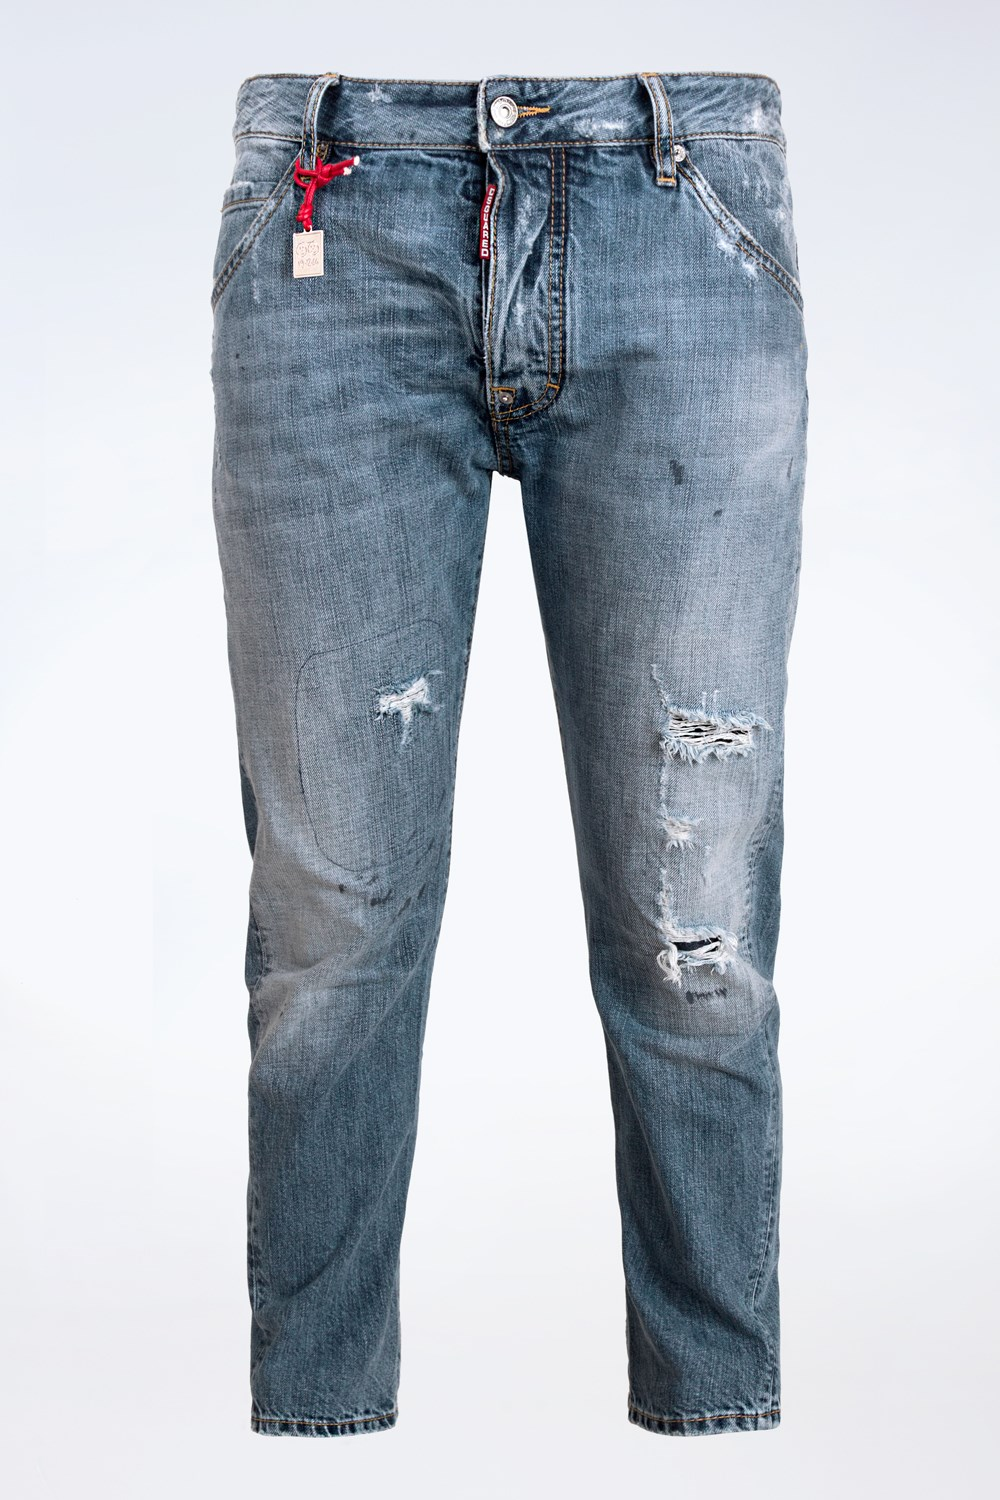 6a61a527c9d ... Light Blue Distressed Jeans   Size  46 IT - Fit  M. starbags video